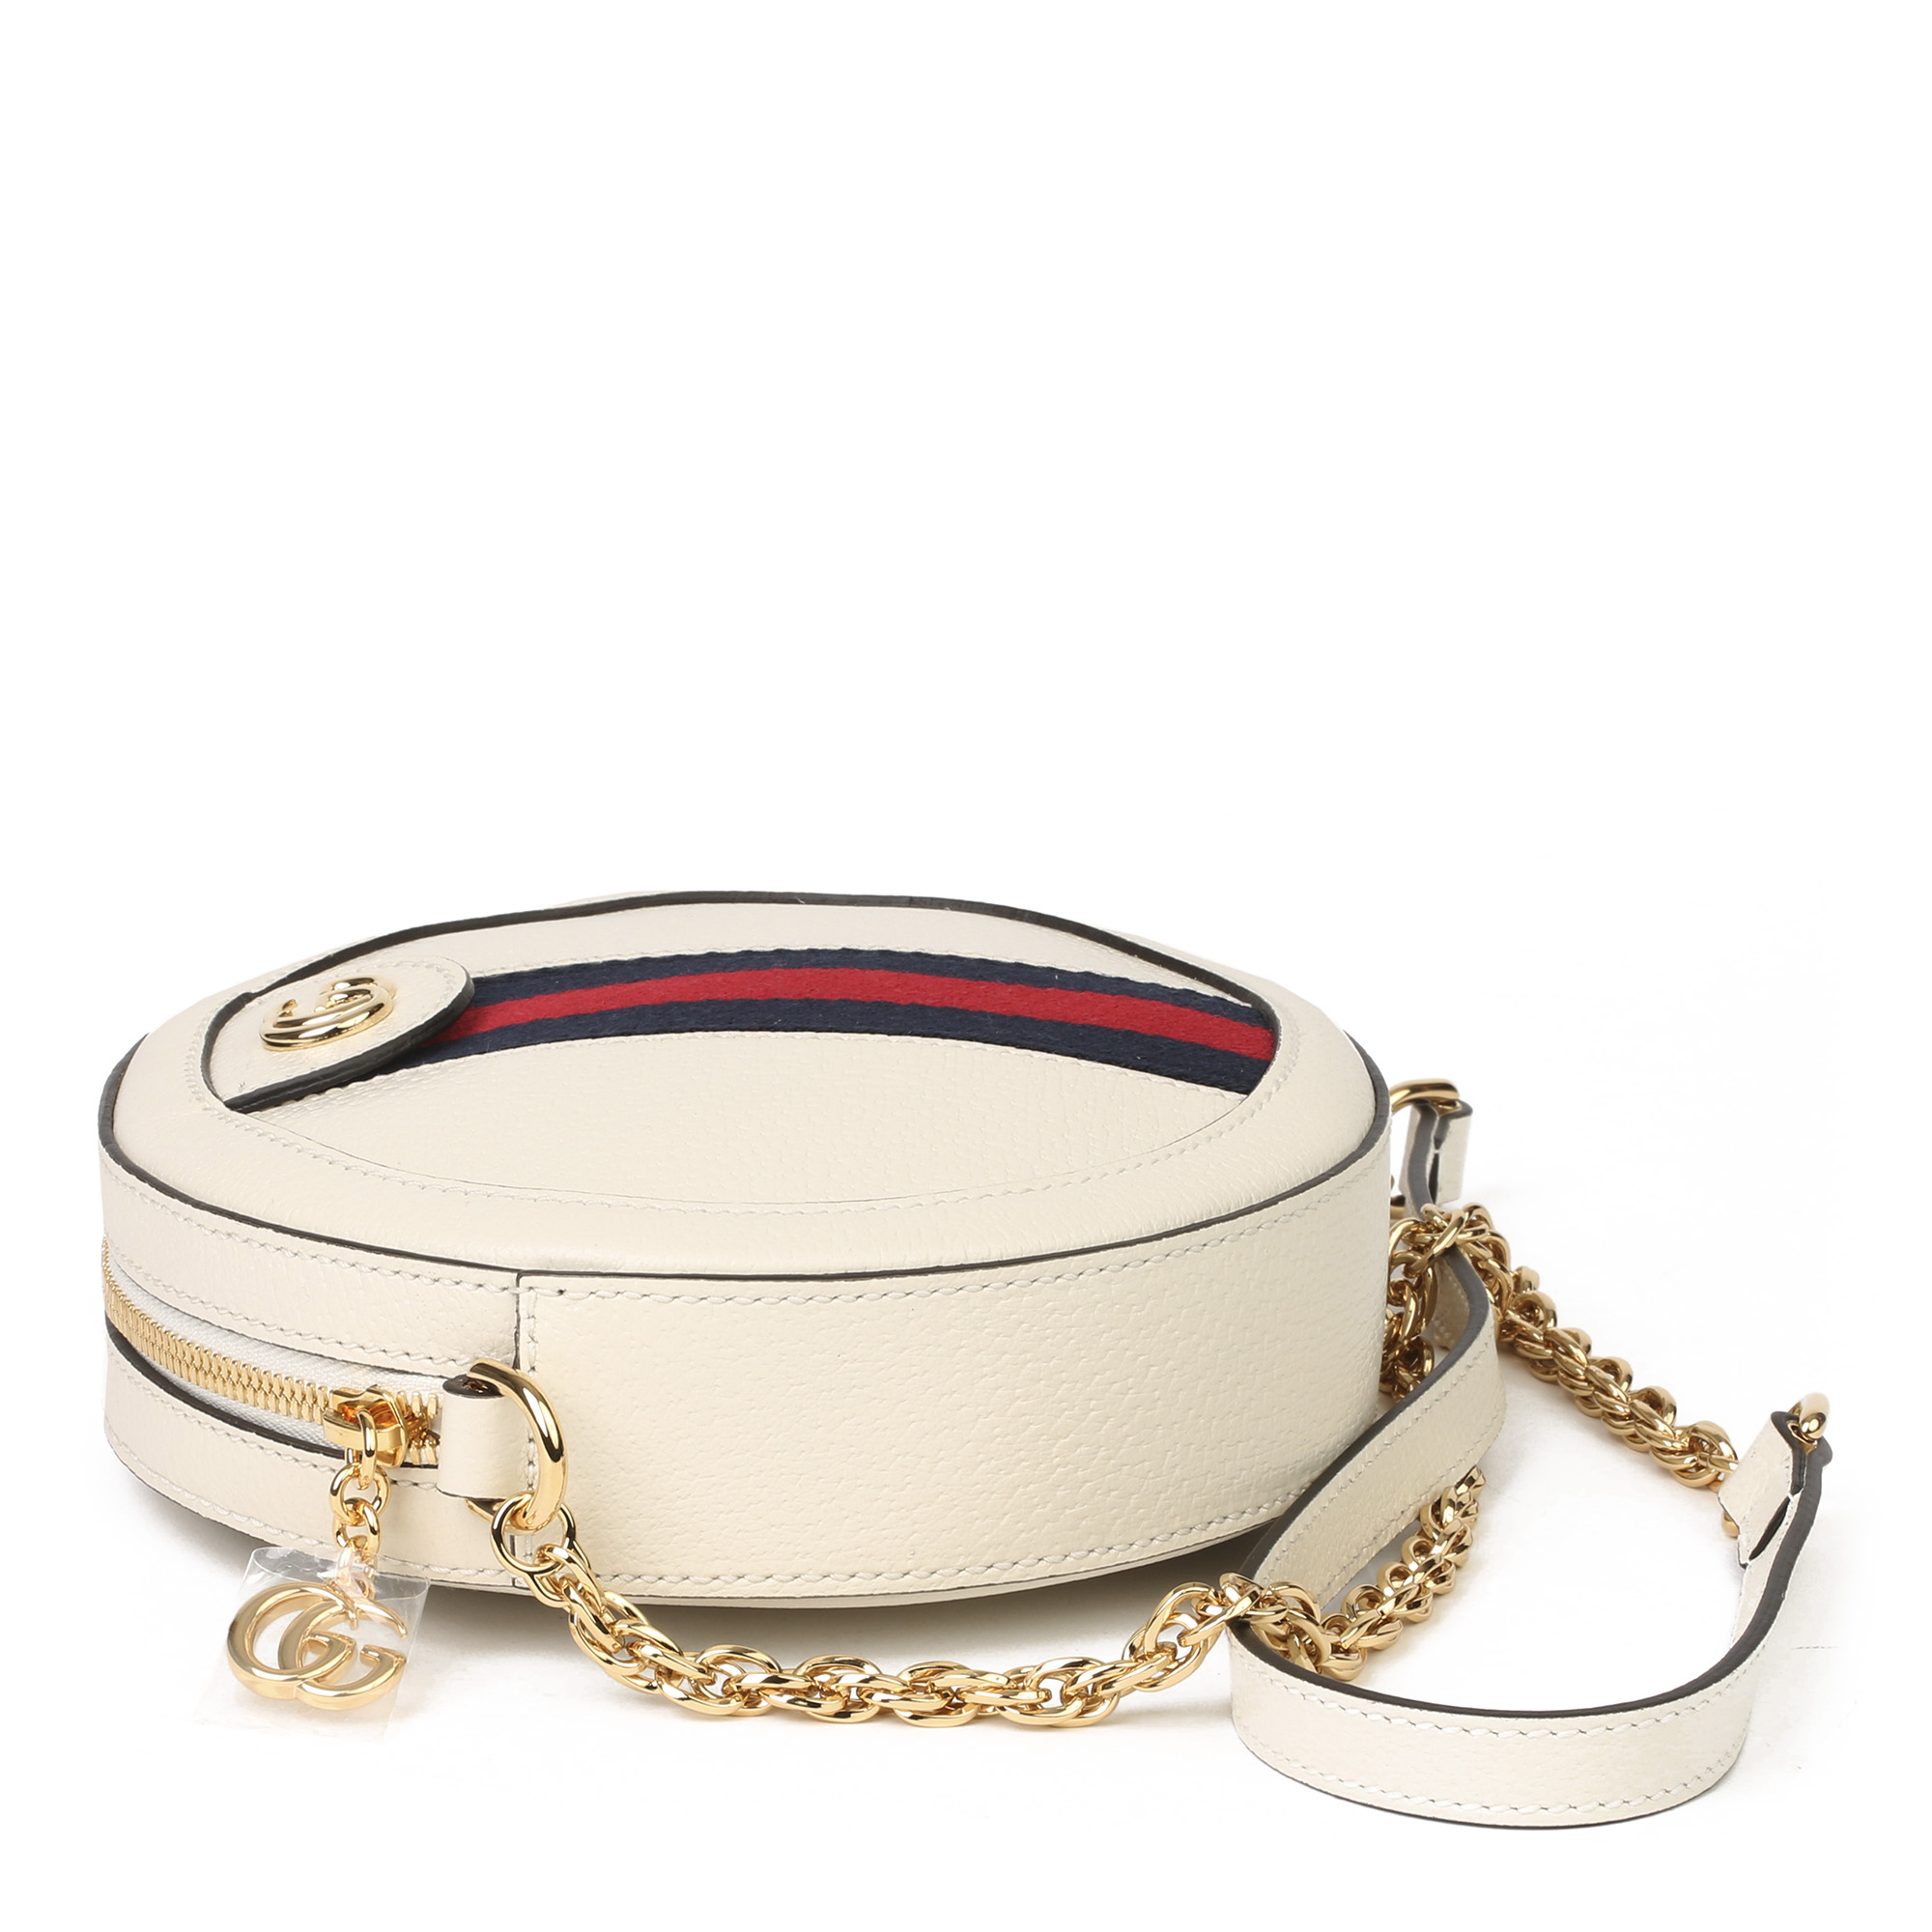 Gucci White Pigskin Leather Web Mini Round Orphidia Shoulder Bag - Image 11 of 11